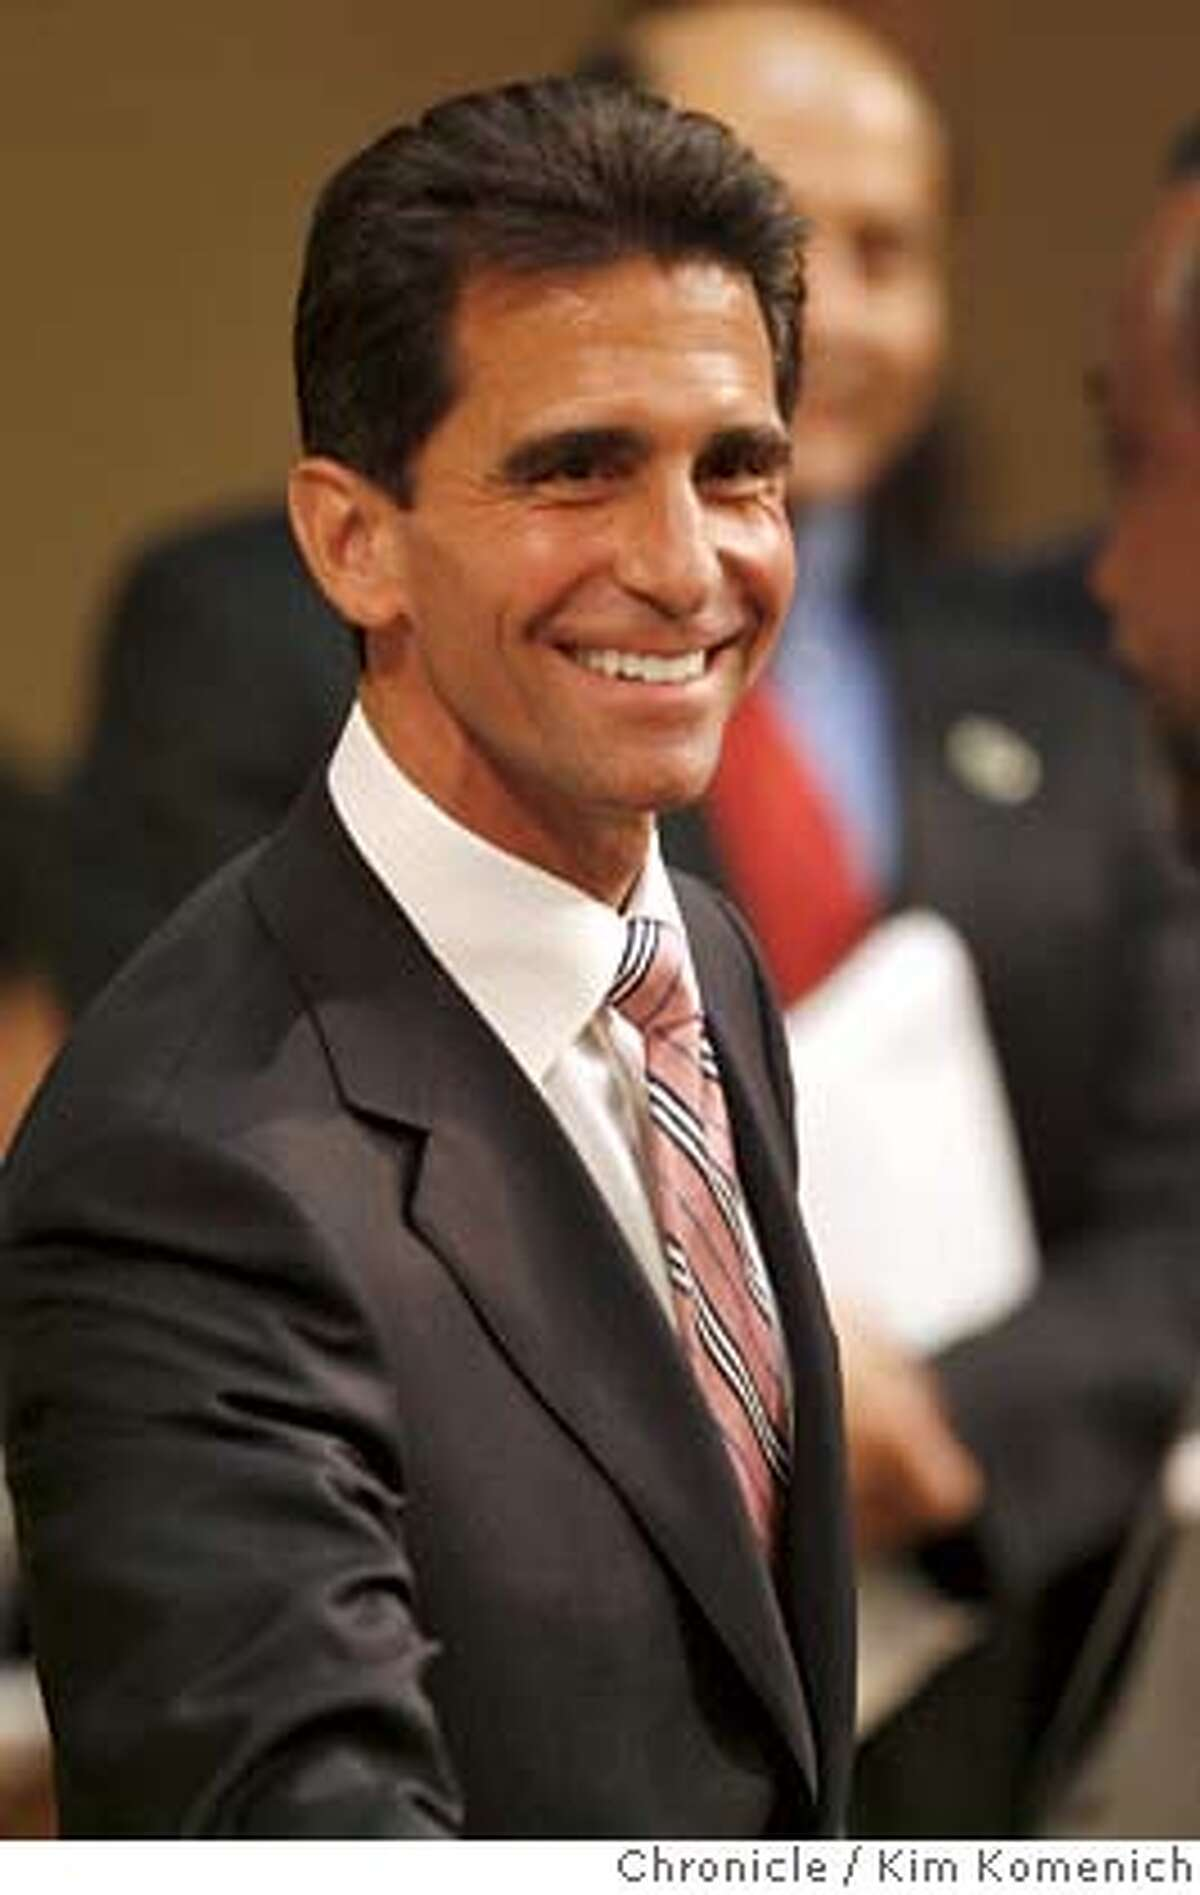 SCHWARZENEGGER10_110_KK.JPG California State Assemblyman Mark Leno on the Asssembly floor before California Gov. Arnold Schwarzenegger gives the 2007 State of the State Address. Photo by Kim Komenich/The Chronicle Ran on: 03-17-2007 State Sen. Carole Migden is seeking a second four-year term in the upper house. Ran on: 03-17-2007 State Sen. Carole Migden is seeking a second four-year term in the upper house. Ran on: 04-23-2007 S.F. lawmakers Mark Leno, left, and Carole Midgen, right, said they are working to make the city safe for immigrants. ALSO Ran on: 04-23-2007 S.F. lawmakers Mark Leno, left, and Carole Midgen, right, said they are working to make the city safe for immigrants. ALSO Ran on: 09-08-2007 Assemblyman Mark Leno authored two previous bills that would have legalized same-sex marriage. ALSO Ran on: 09-17-2007 Assemblyman Mark Leno sponsored the bill approved this month. ALSO Ran on: 11-18-2007 Mayor Gavin Newsom and Supervisors President Aaron Peskin confer in January. They now dont see eye to eye on trip to China. �2007, San Francisco Chronicle/Kim Komenich MANDATORY CREDIT FOR PHOTOG AND SAN FRANCISCO CHRONICLE/NO SALES-MAGS OUT